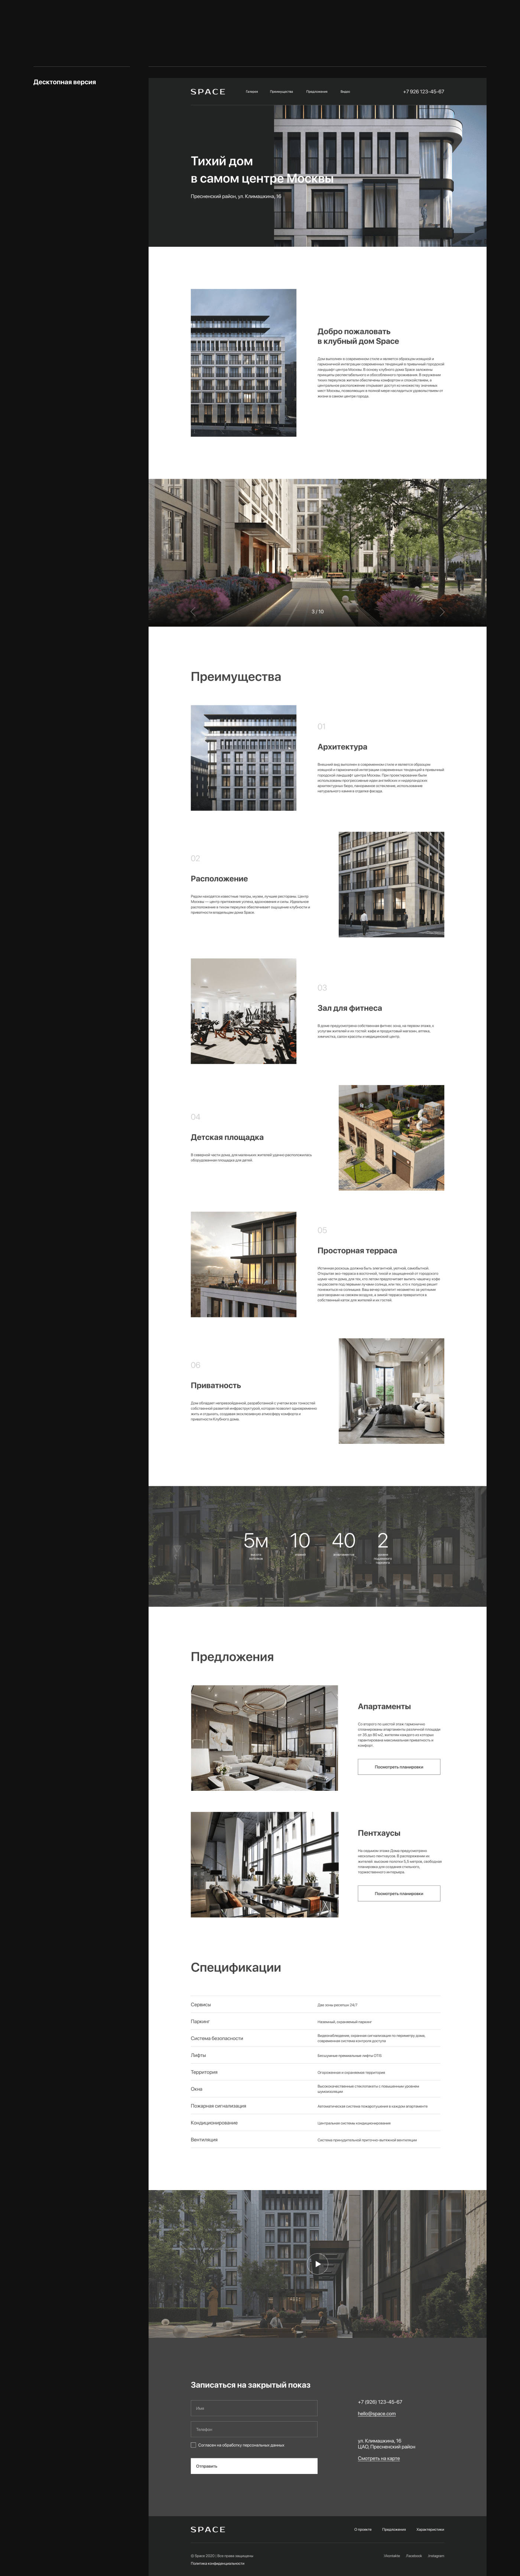 apartments architecture building house landingpage Moscow penthouse real estate Webdesign animation